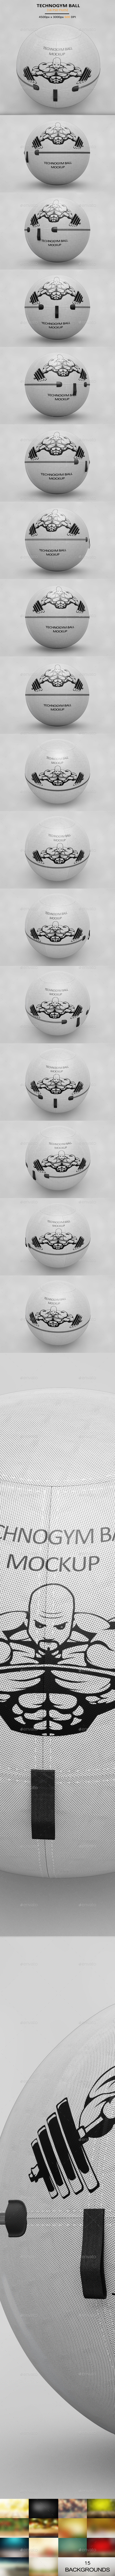 GraphicRiver Gym Ball MockUp 20298124